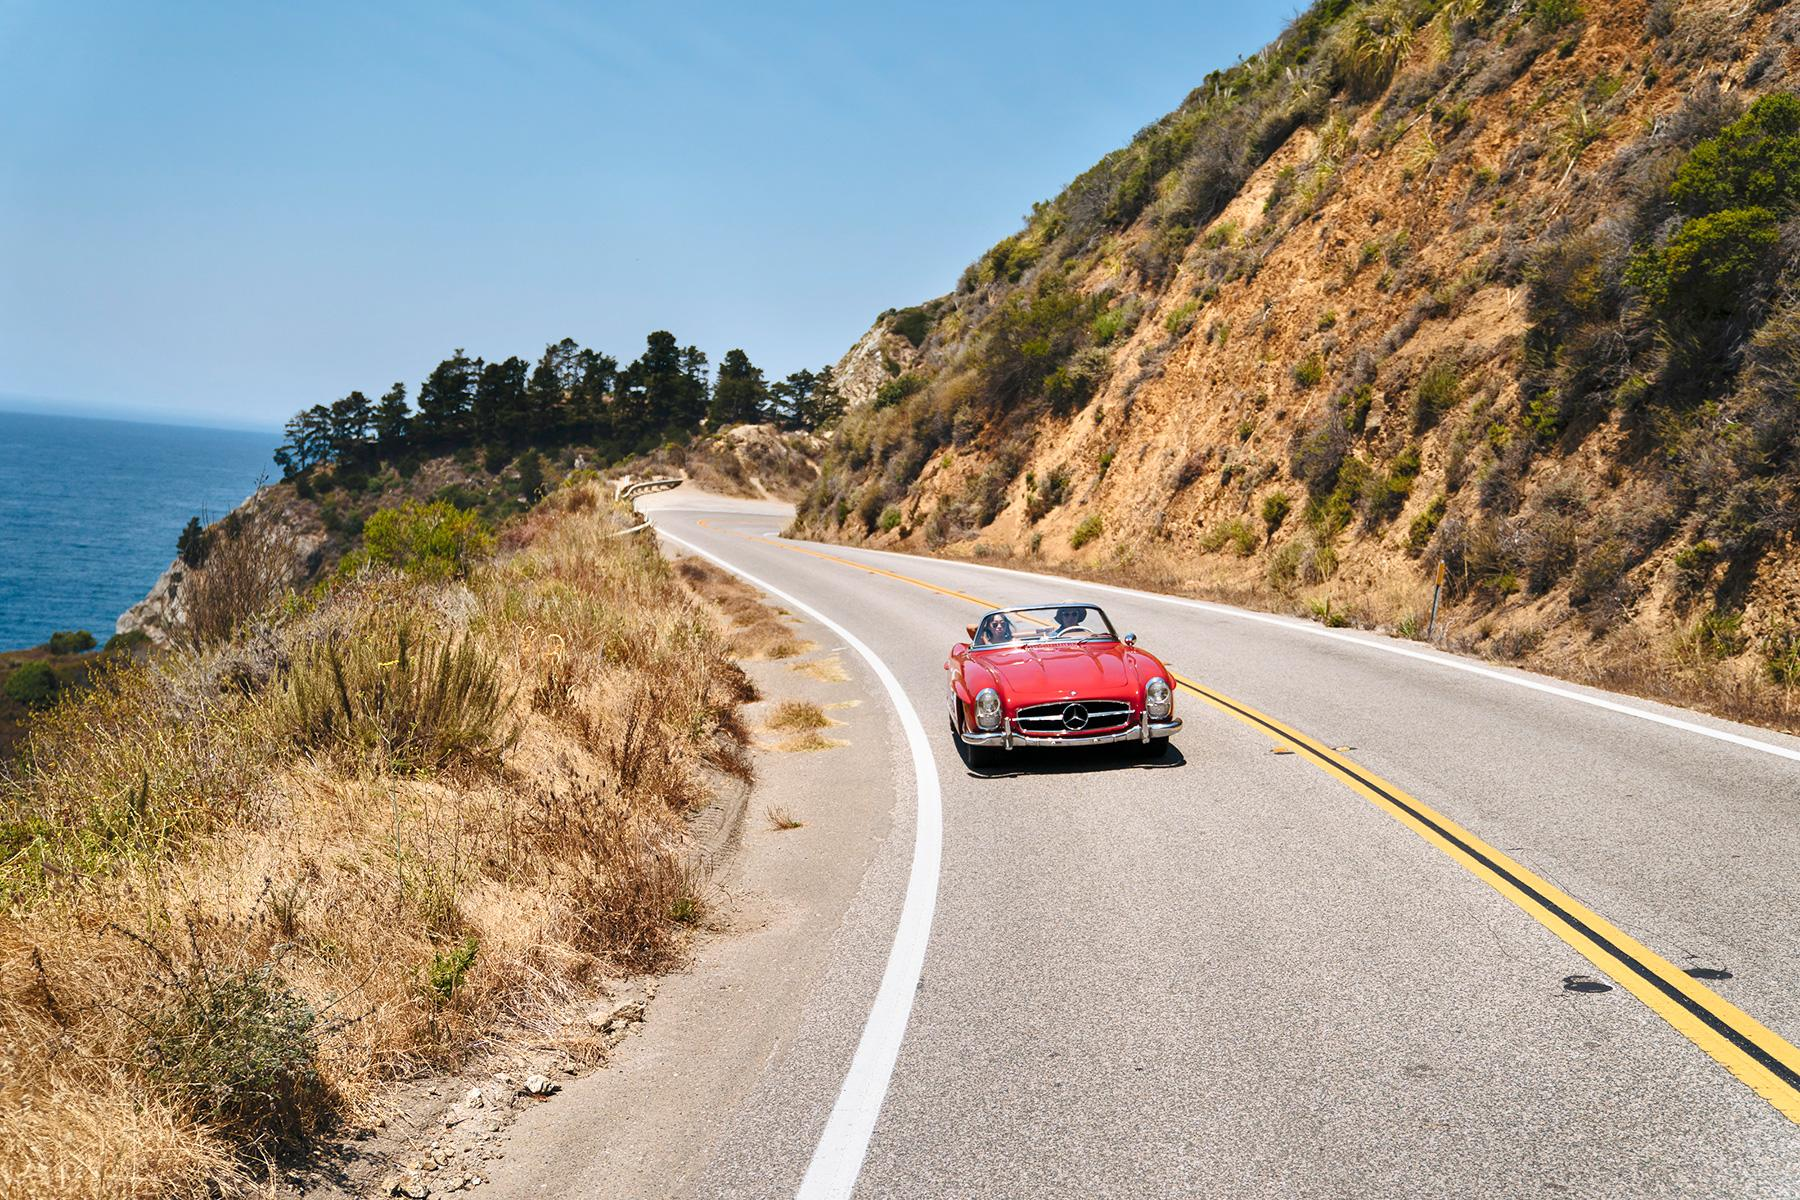 Pch Dream Car >> Lake Tahoe Travel Guide - Expert Picks for your Vacation